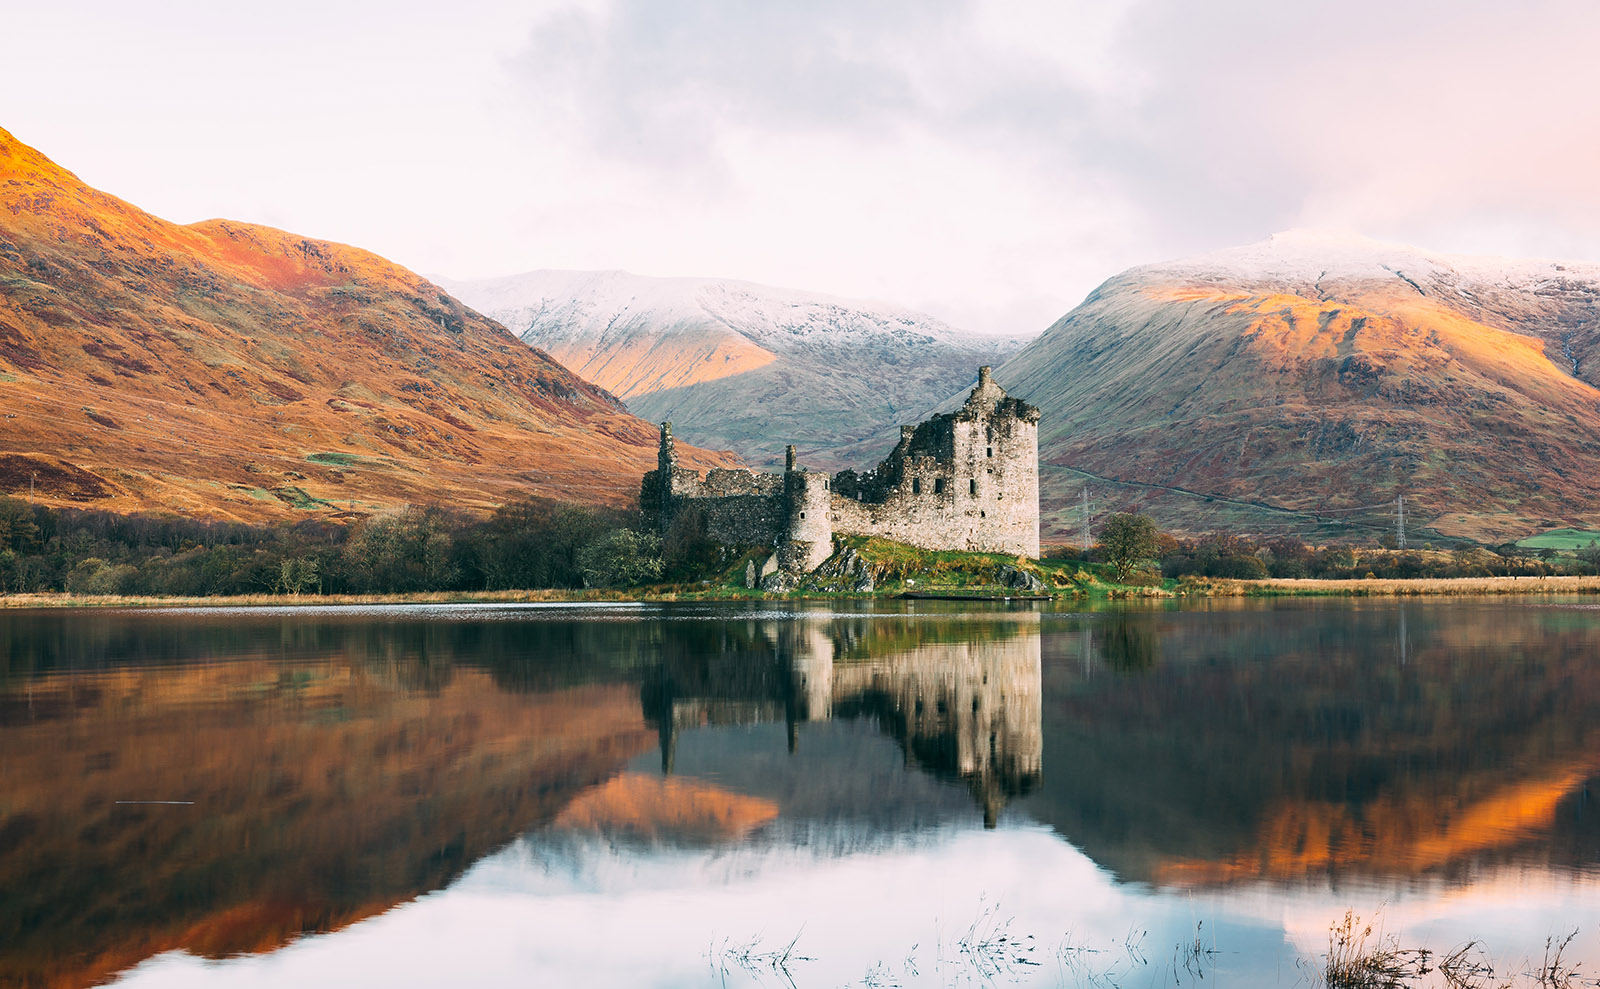 kilchurn castle in scotland surrounded by highlands